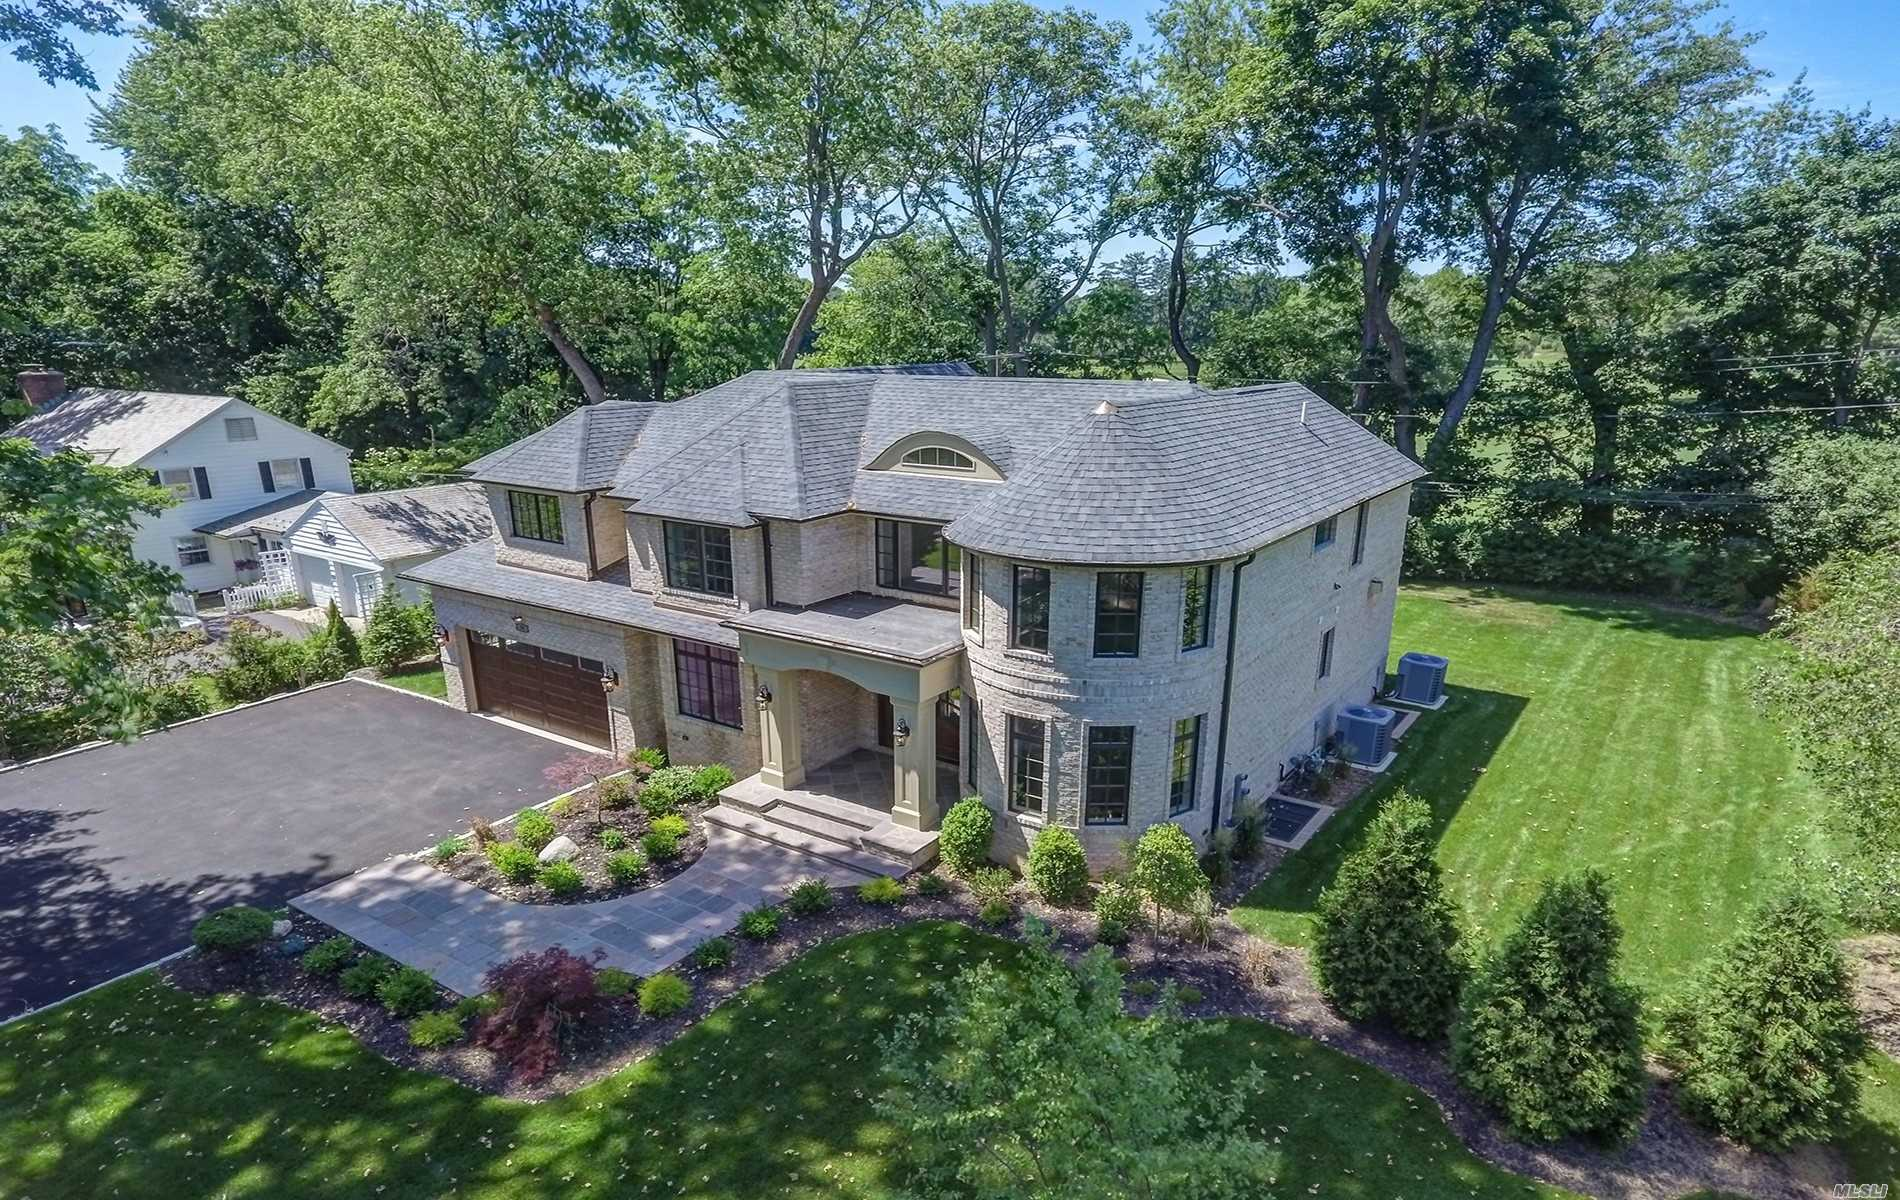 Motivated Seller!!!Luxury At An Even Greater Value! Enter Your New Abode, Sleek, Zen Like Arena, Ready To Sooth Your Soul. Sun-Drenched New Construction W/Walls Of Glass Overlooks The Golf Course!10' High Ceiling, Beautiful Architectural Details.Gleeming Wood Floors, Dual Fire Pl, Custom-State Of Art Gourmet Kitchen, Romantic Master Suite W/Spa Bath/Balcony &Golf Course Views.Professionally Landscaped Prop W/Mature Trees.Close To Town, Major Highways, Famed Shopping&Restaurants.Pt. Washington Sd!